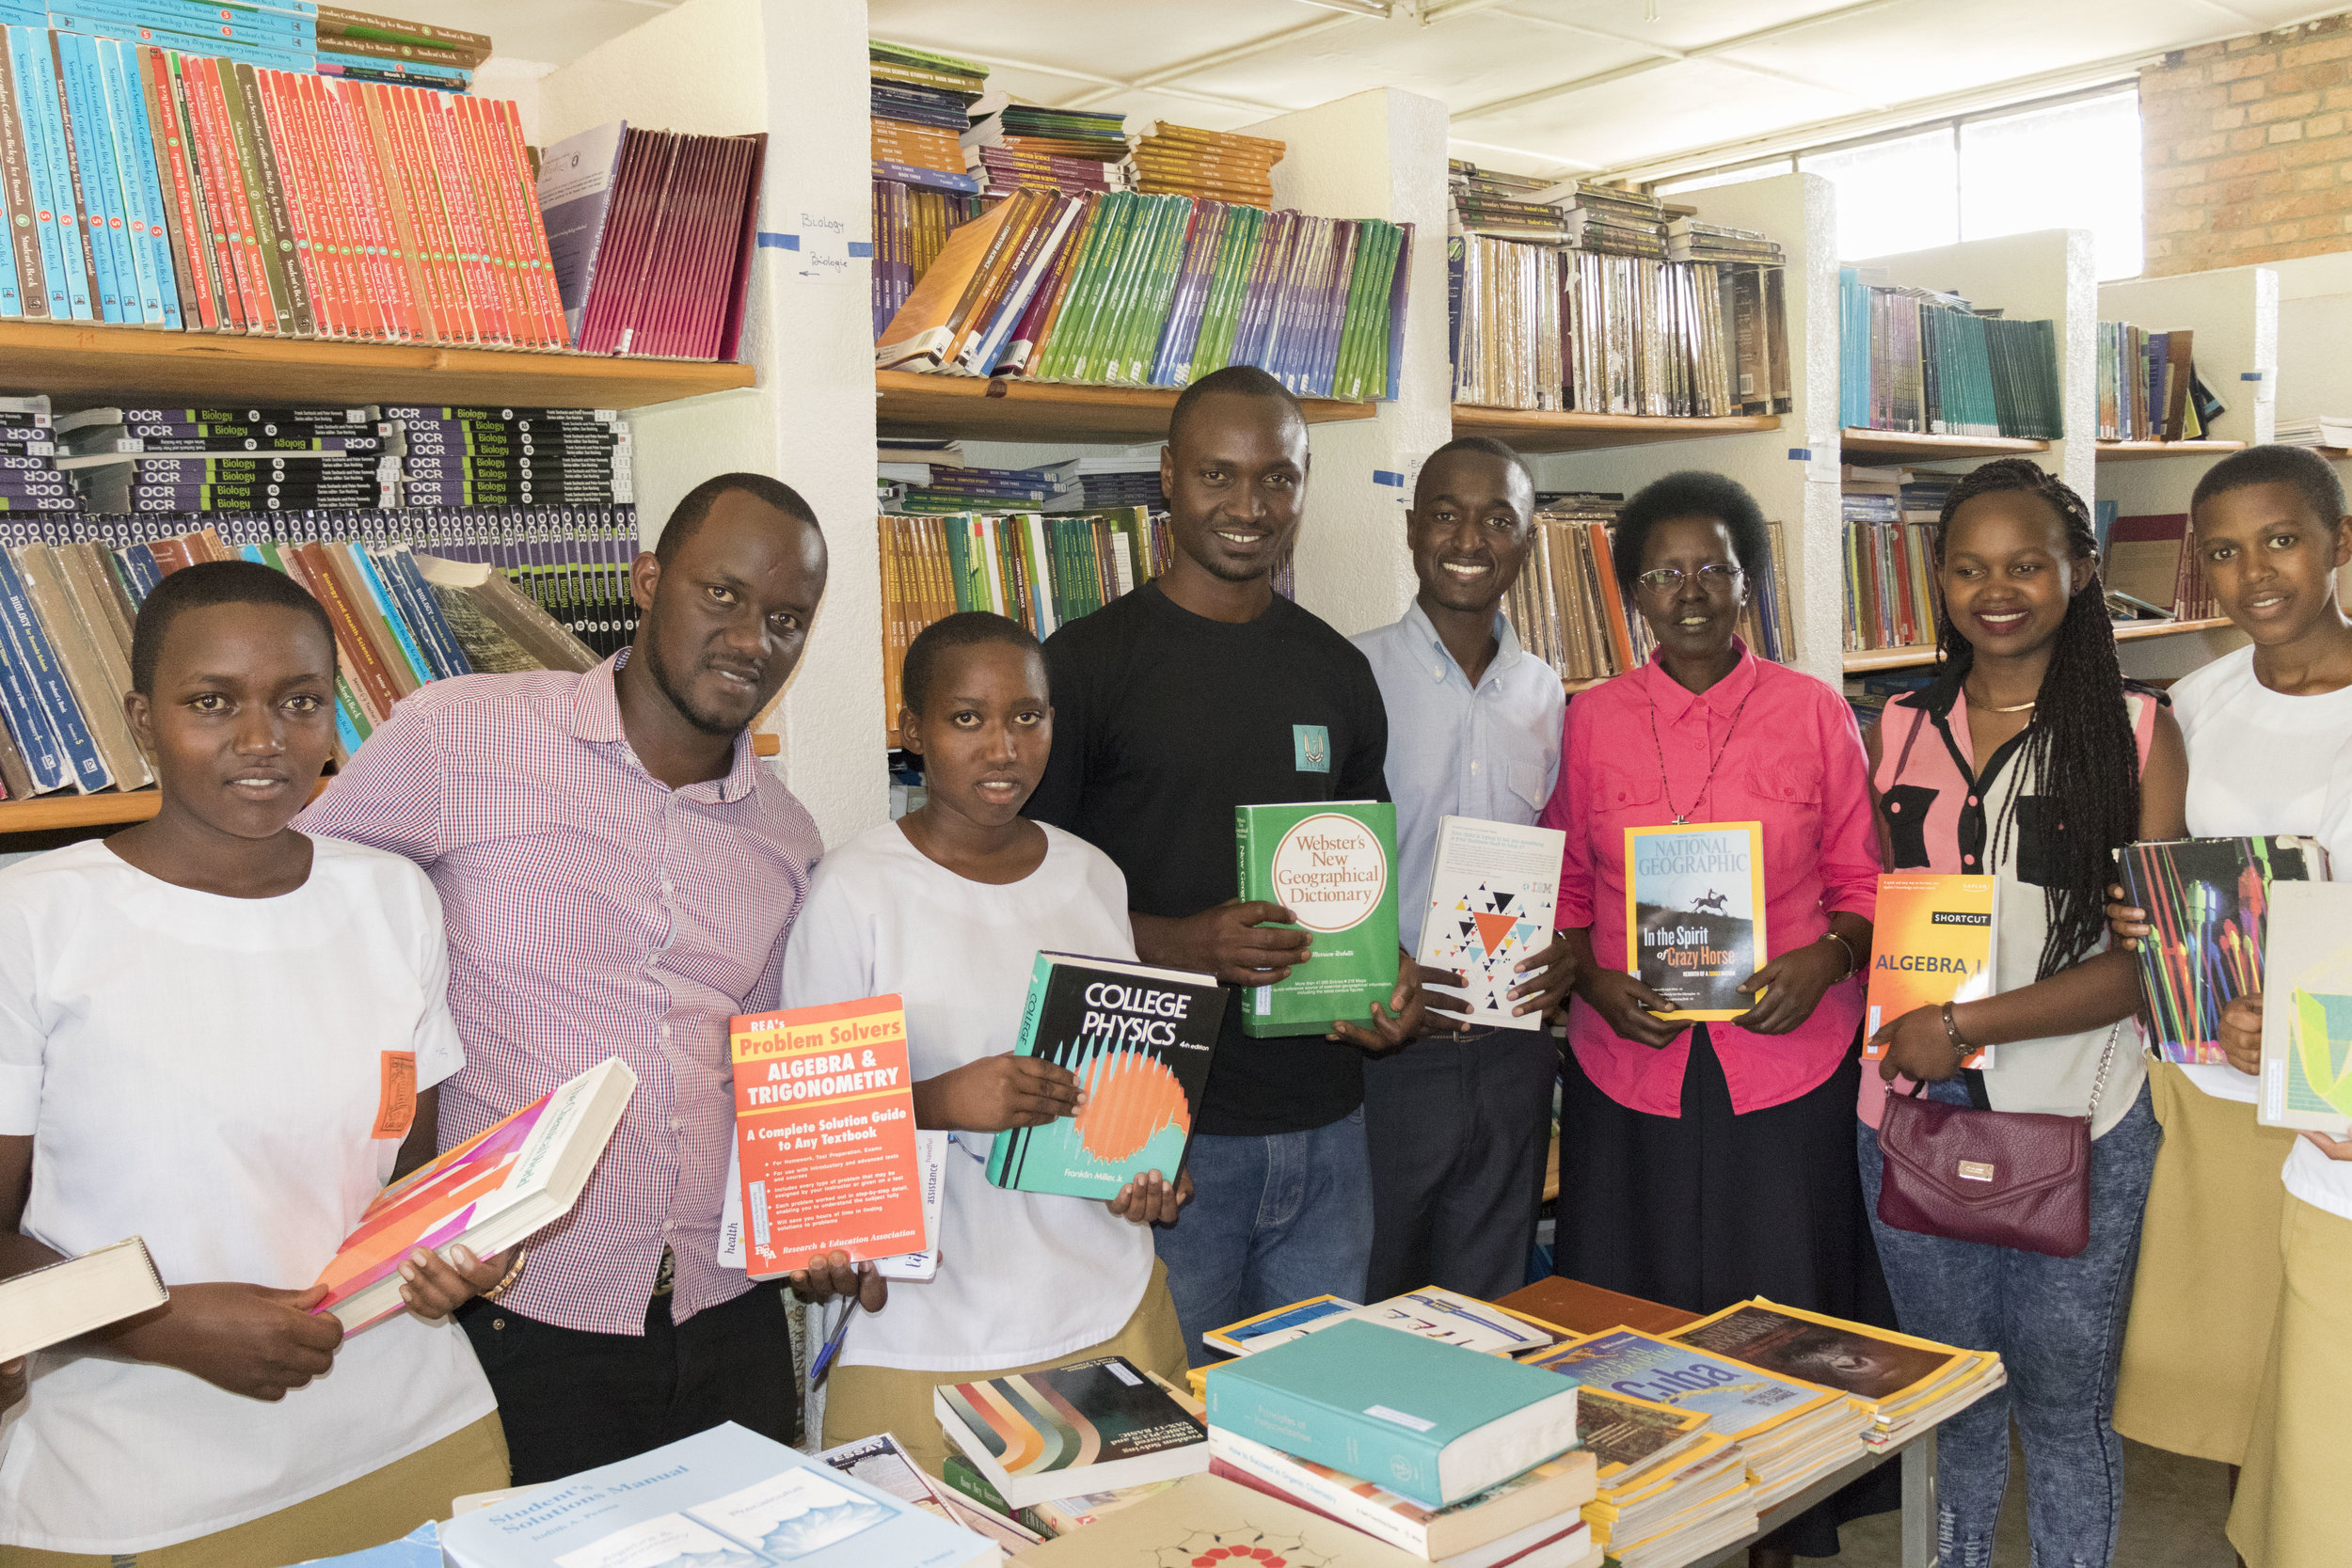 Headmistress Sister Philomene Nyirahuku (Center) poses with her students, Justus and Seven United Leadership for a photo